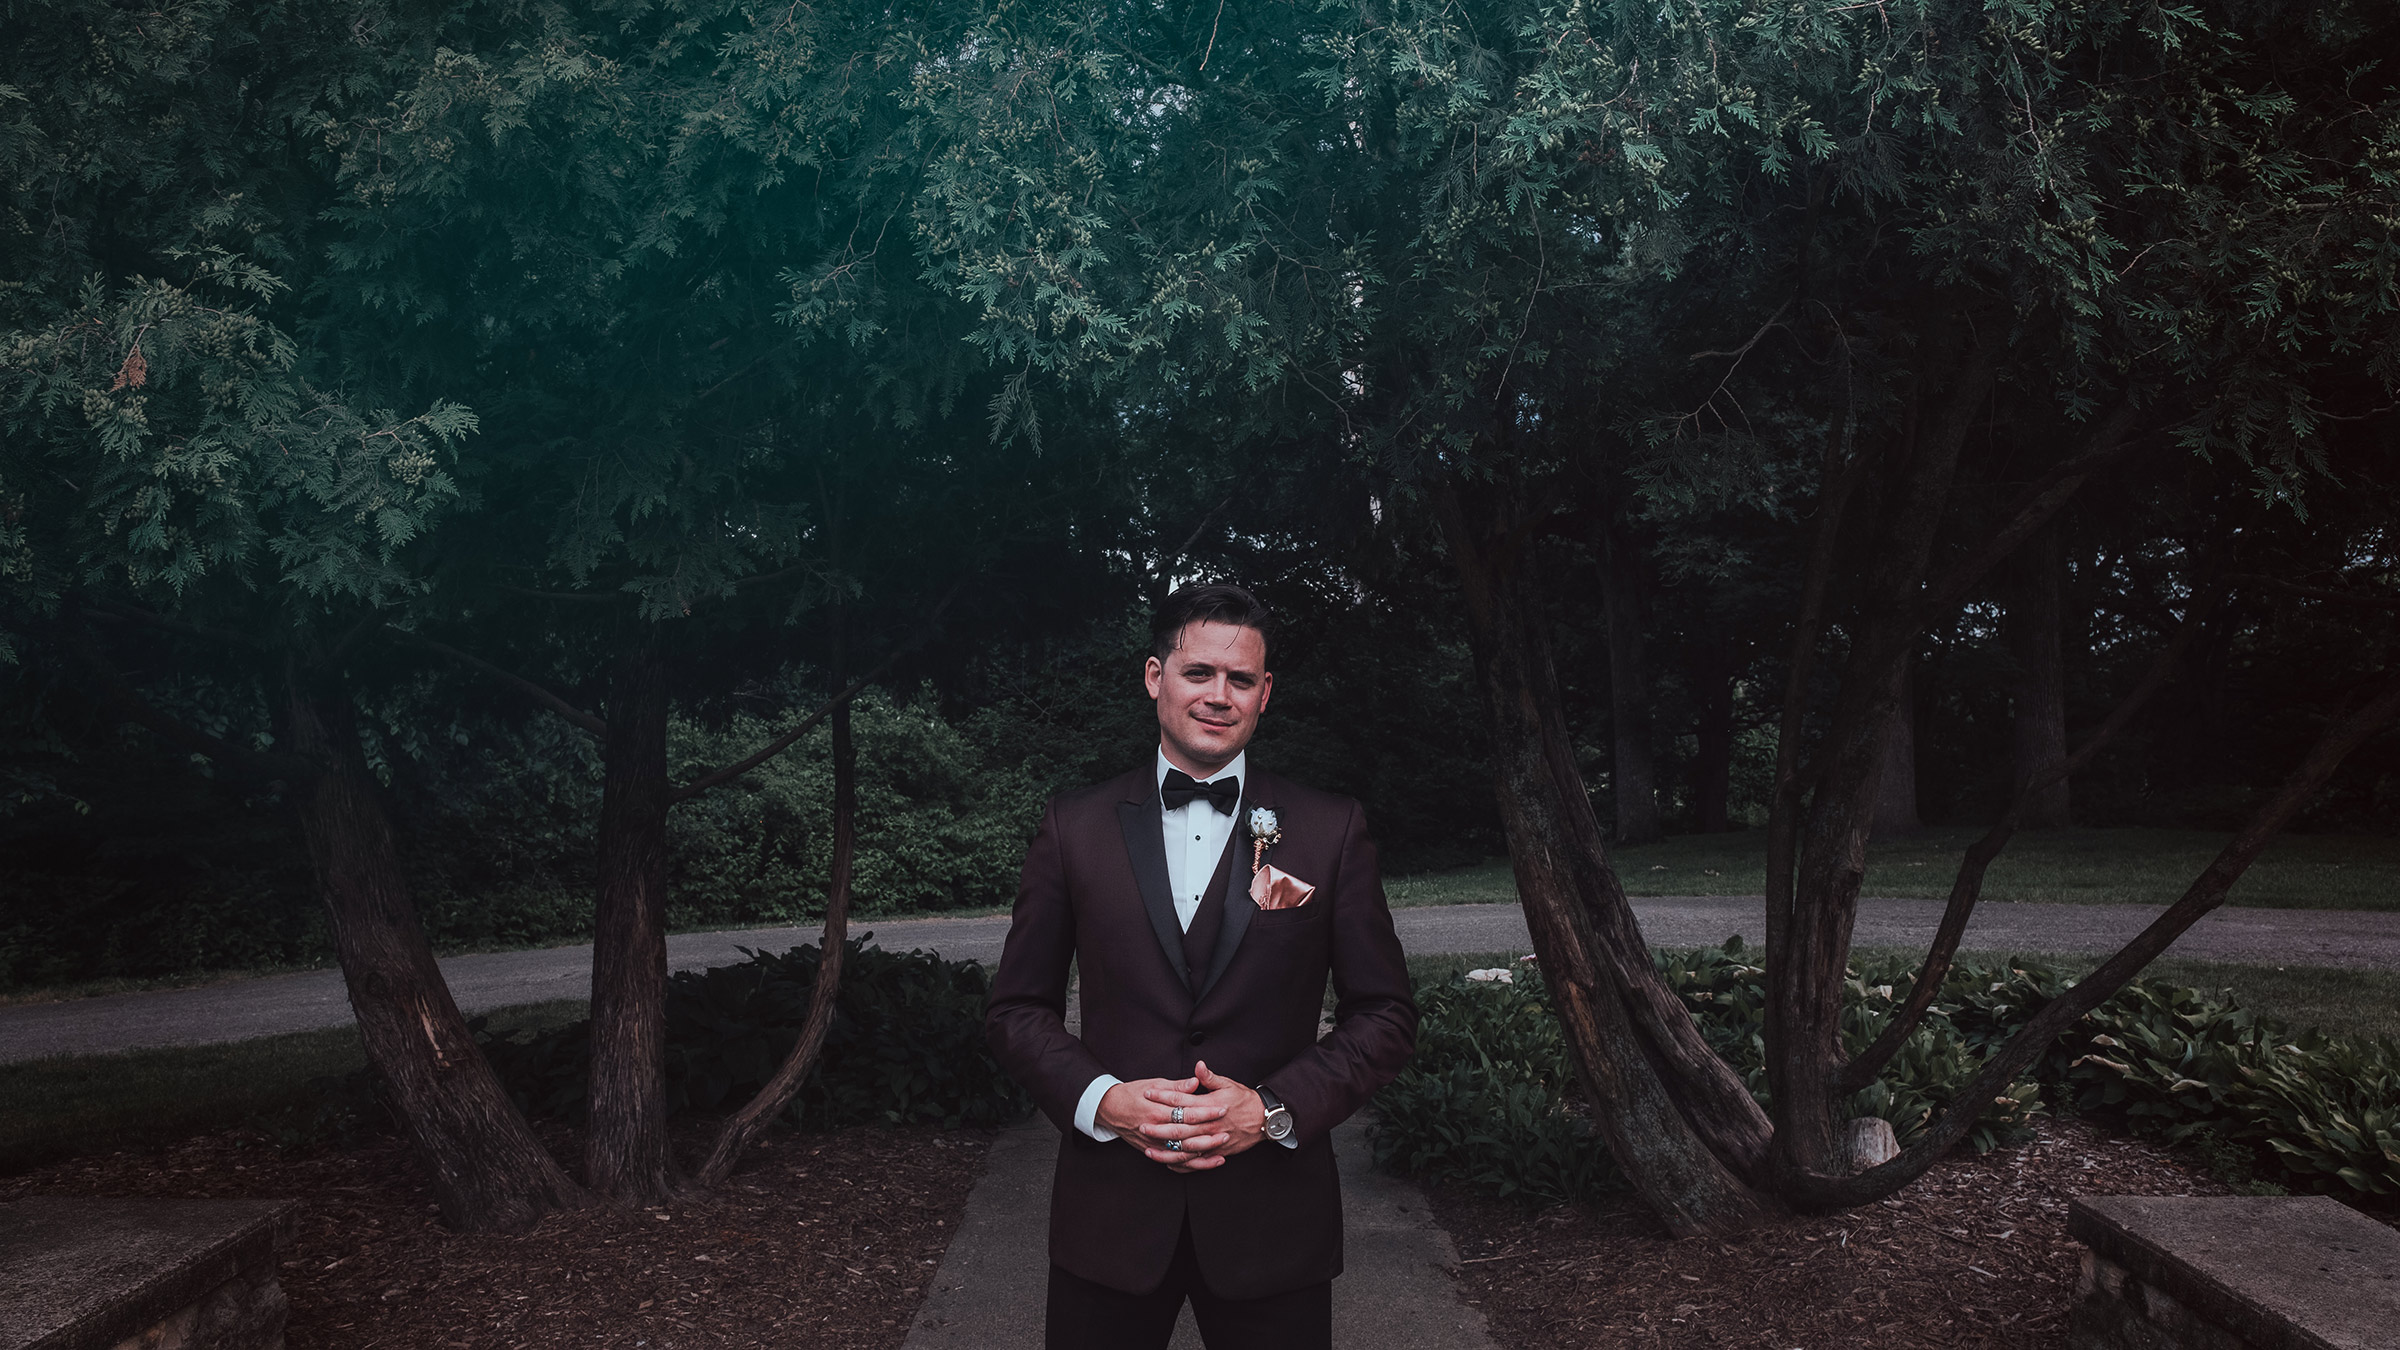 groom-portrait-in-front-of-trees-desmoines-iowa-art-center-raelyn-ramey-photography.jpg